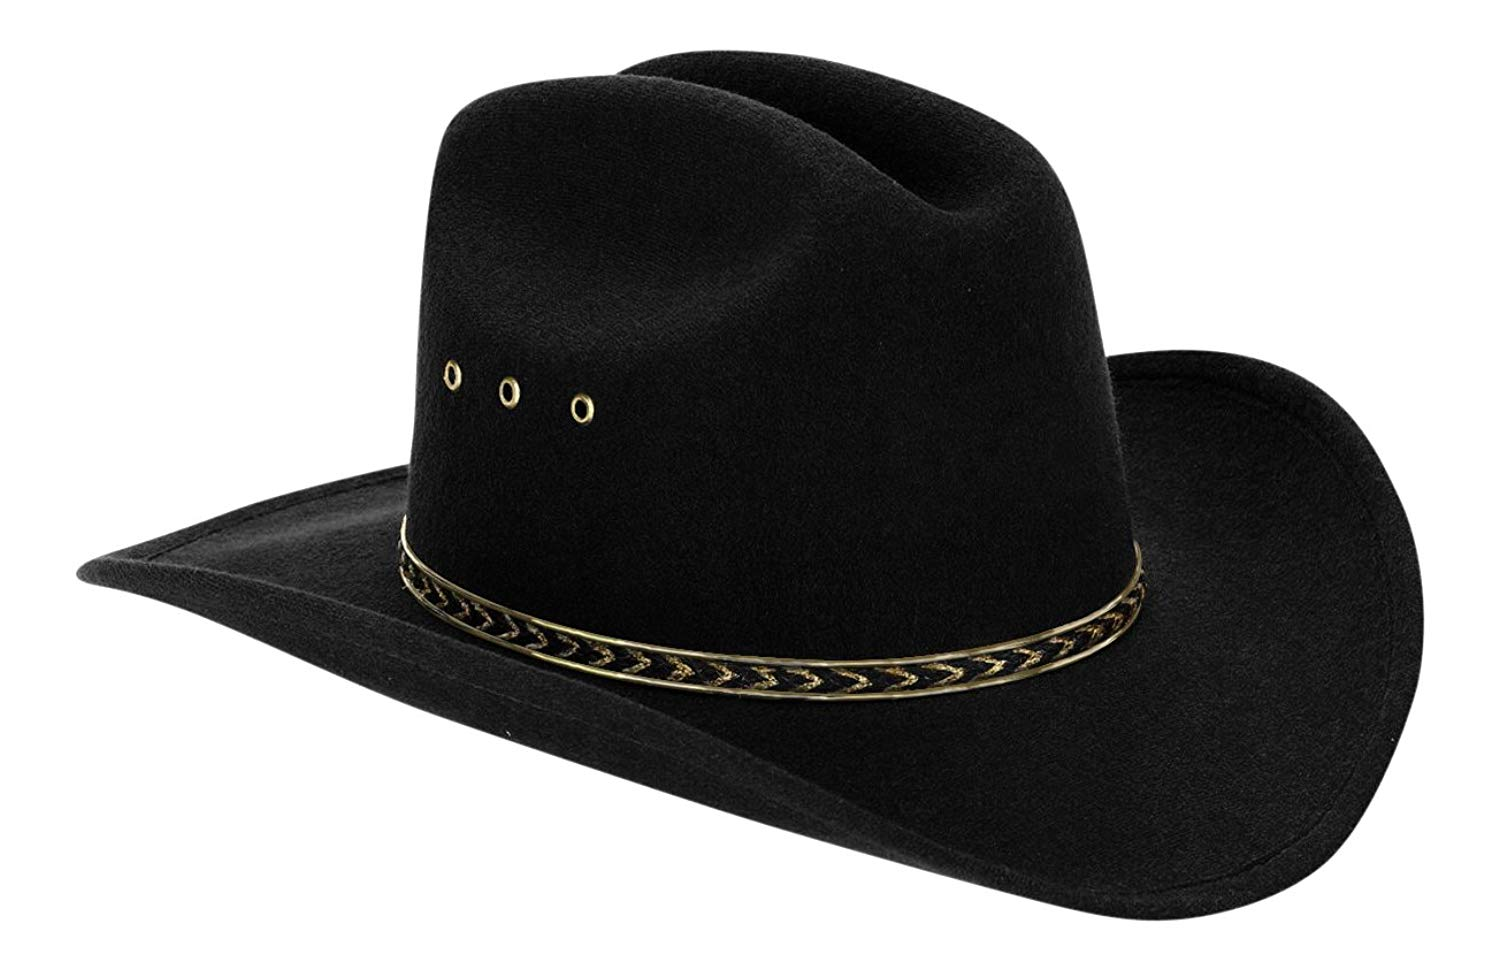 a0cb4770f79 Get Quotations · Western Black Child Cowboy Hat for Kids (Black Gold Band)  Size 6 5